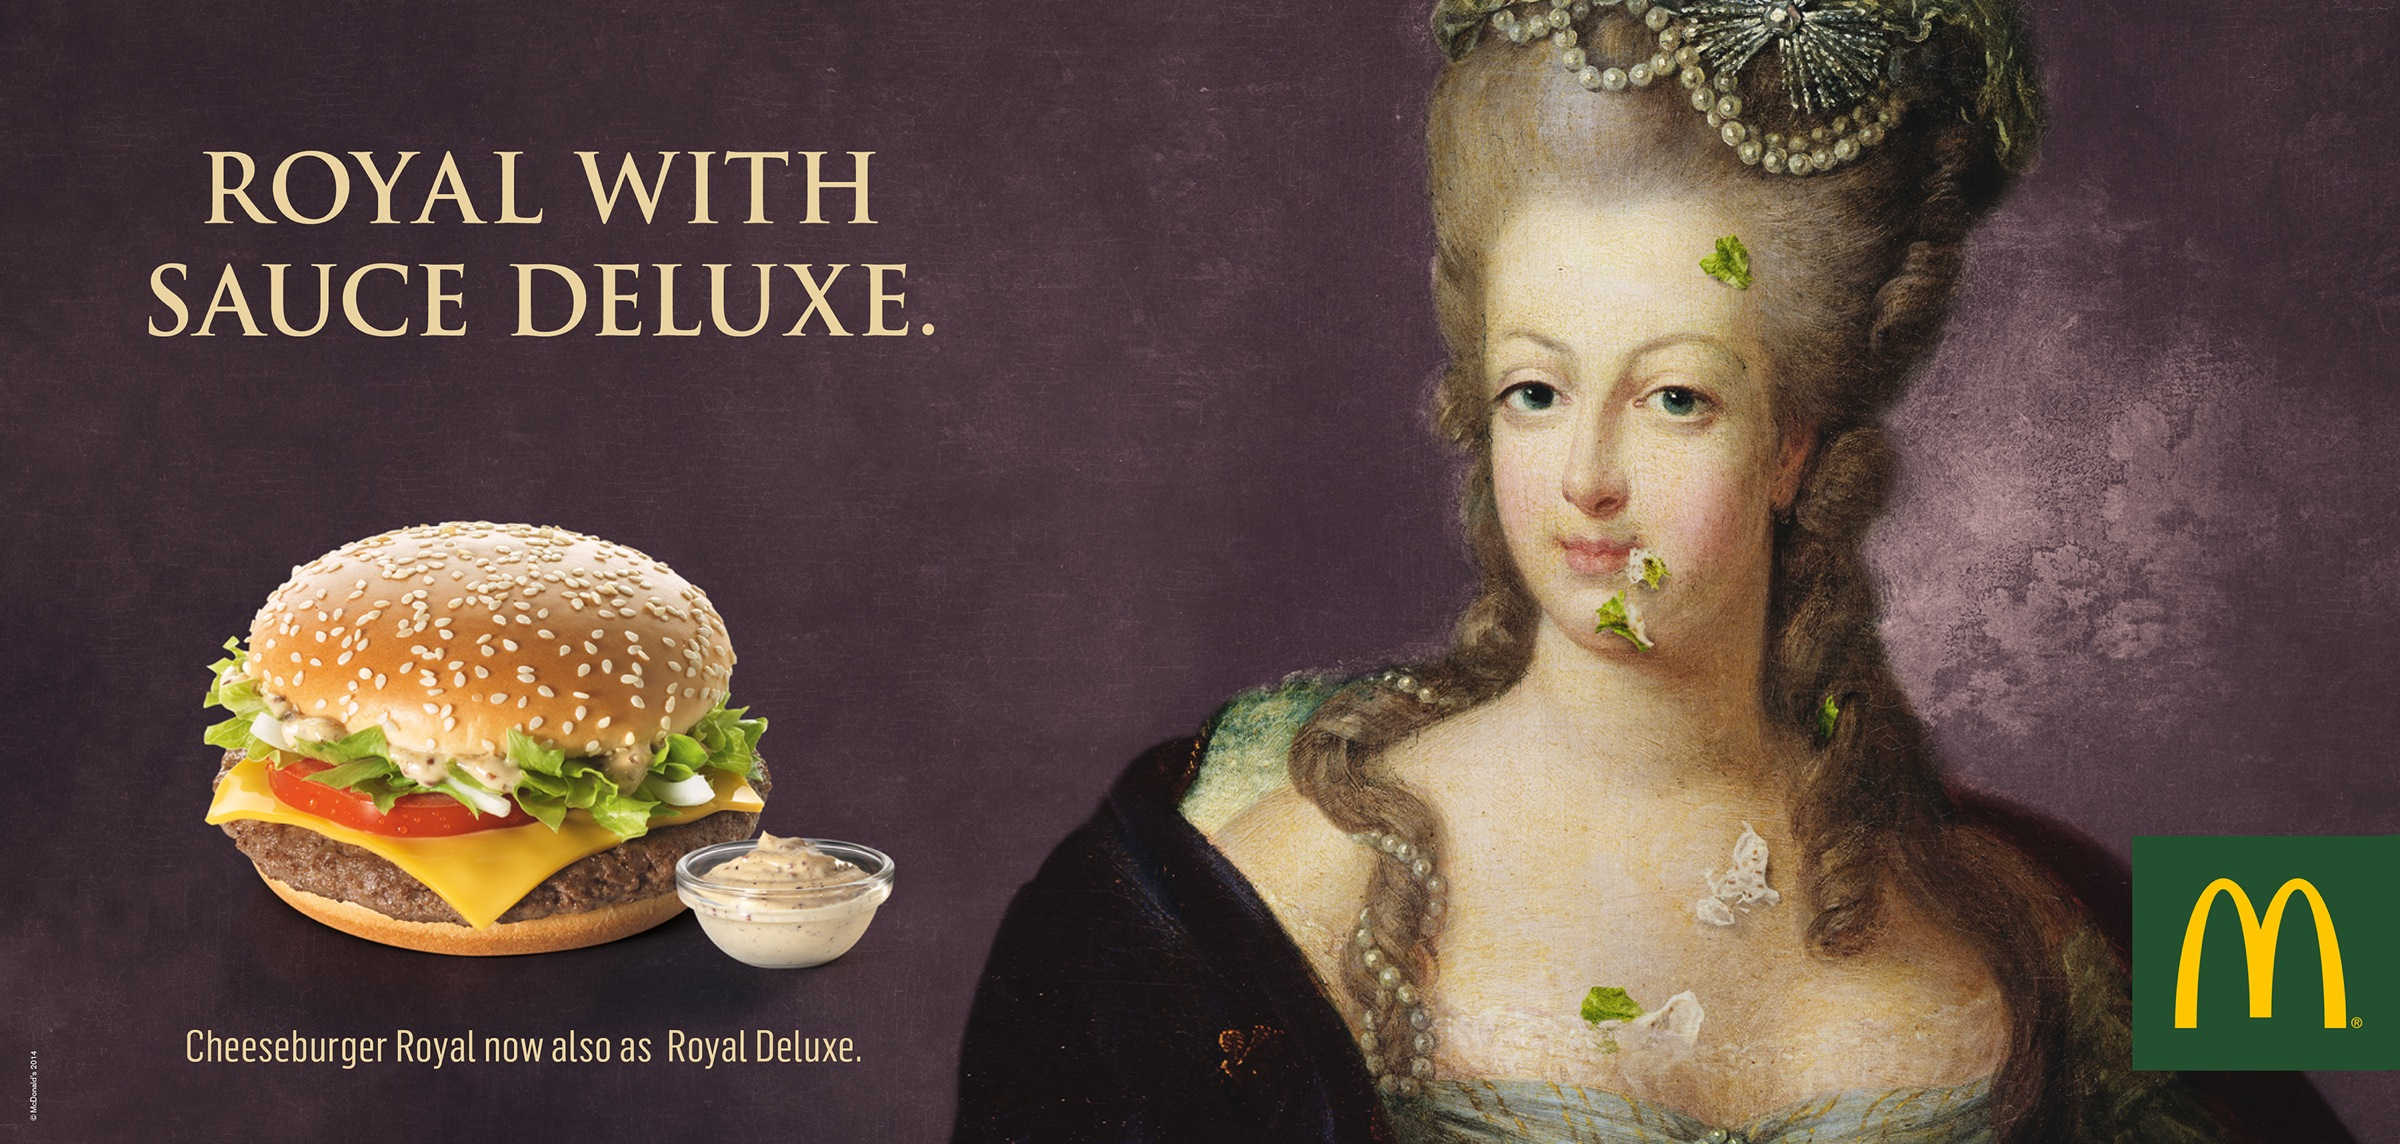 Super McDonald's Print Advert By TBWA: Royal with Sauce Deluxe | Ads of  GX61